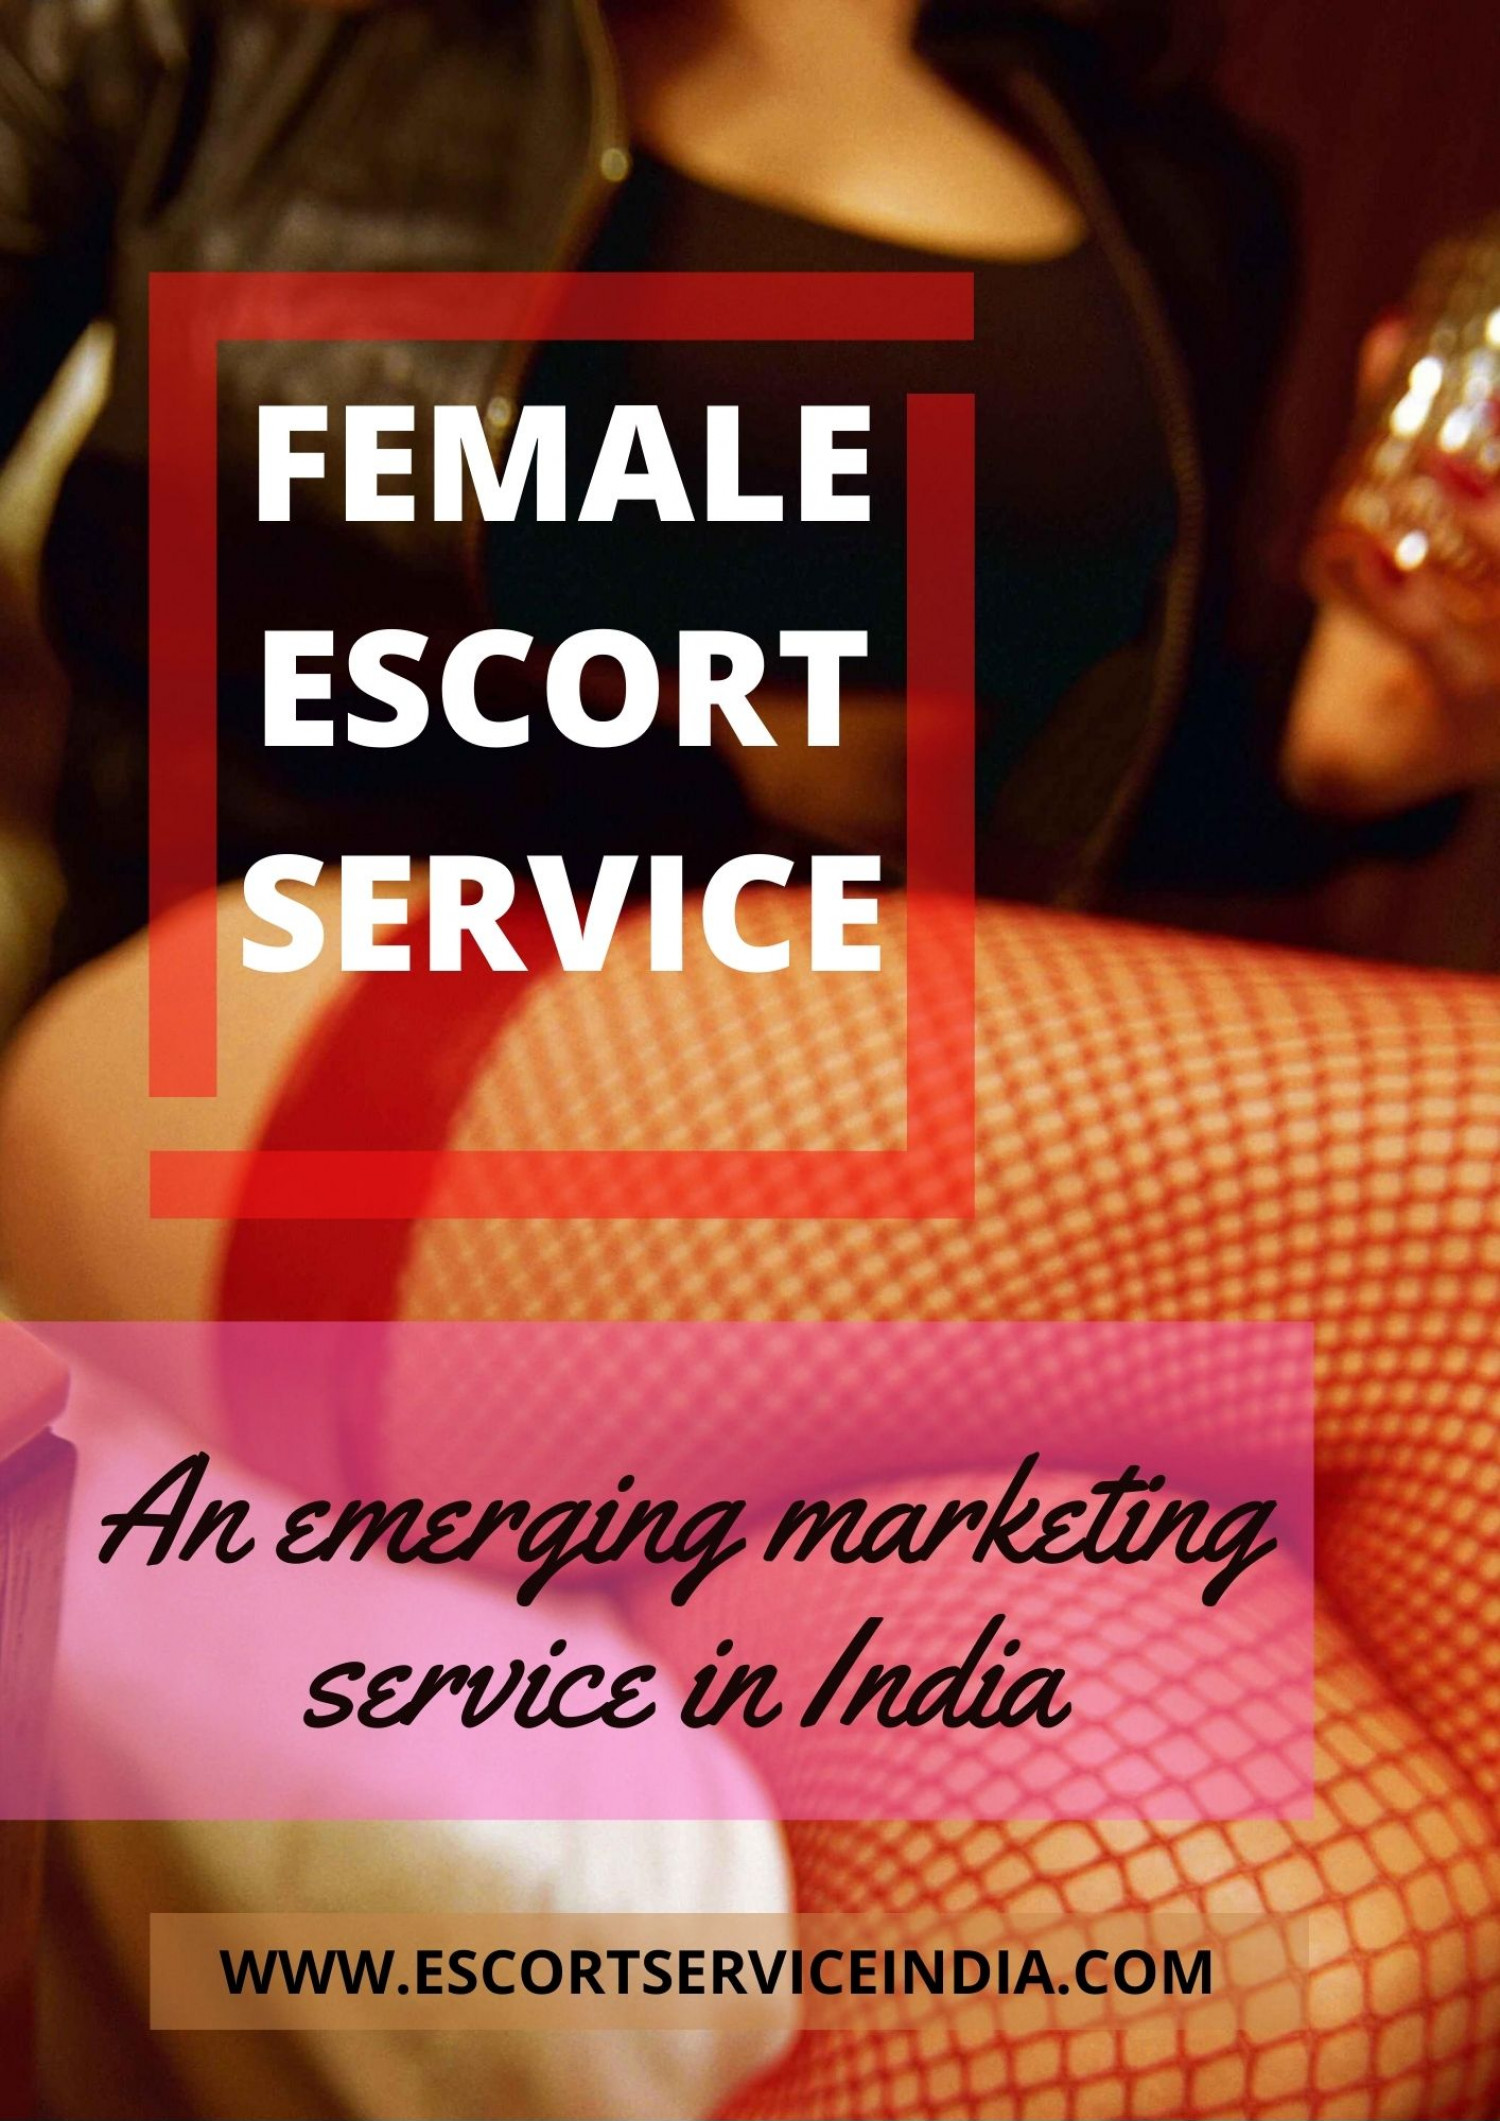 Female Escort Service - an emerging Marketing service in India Infographic